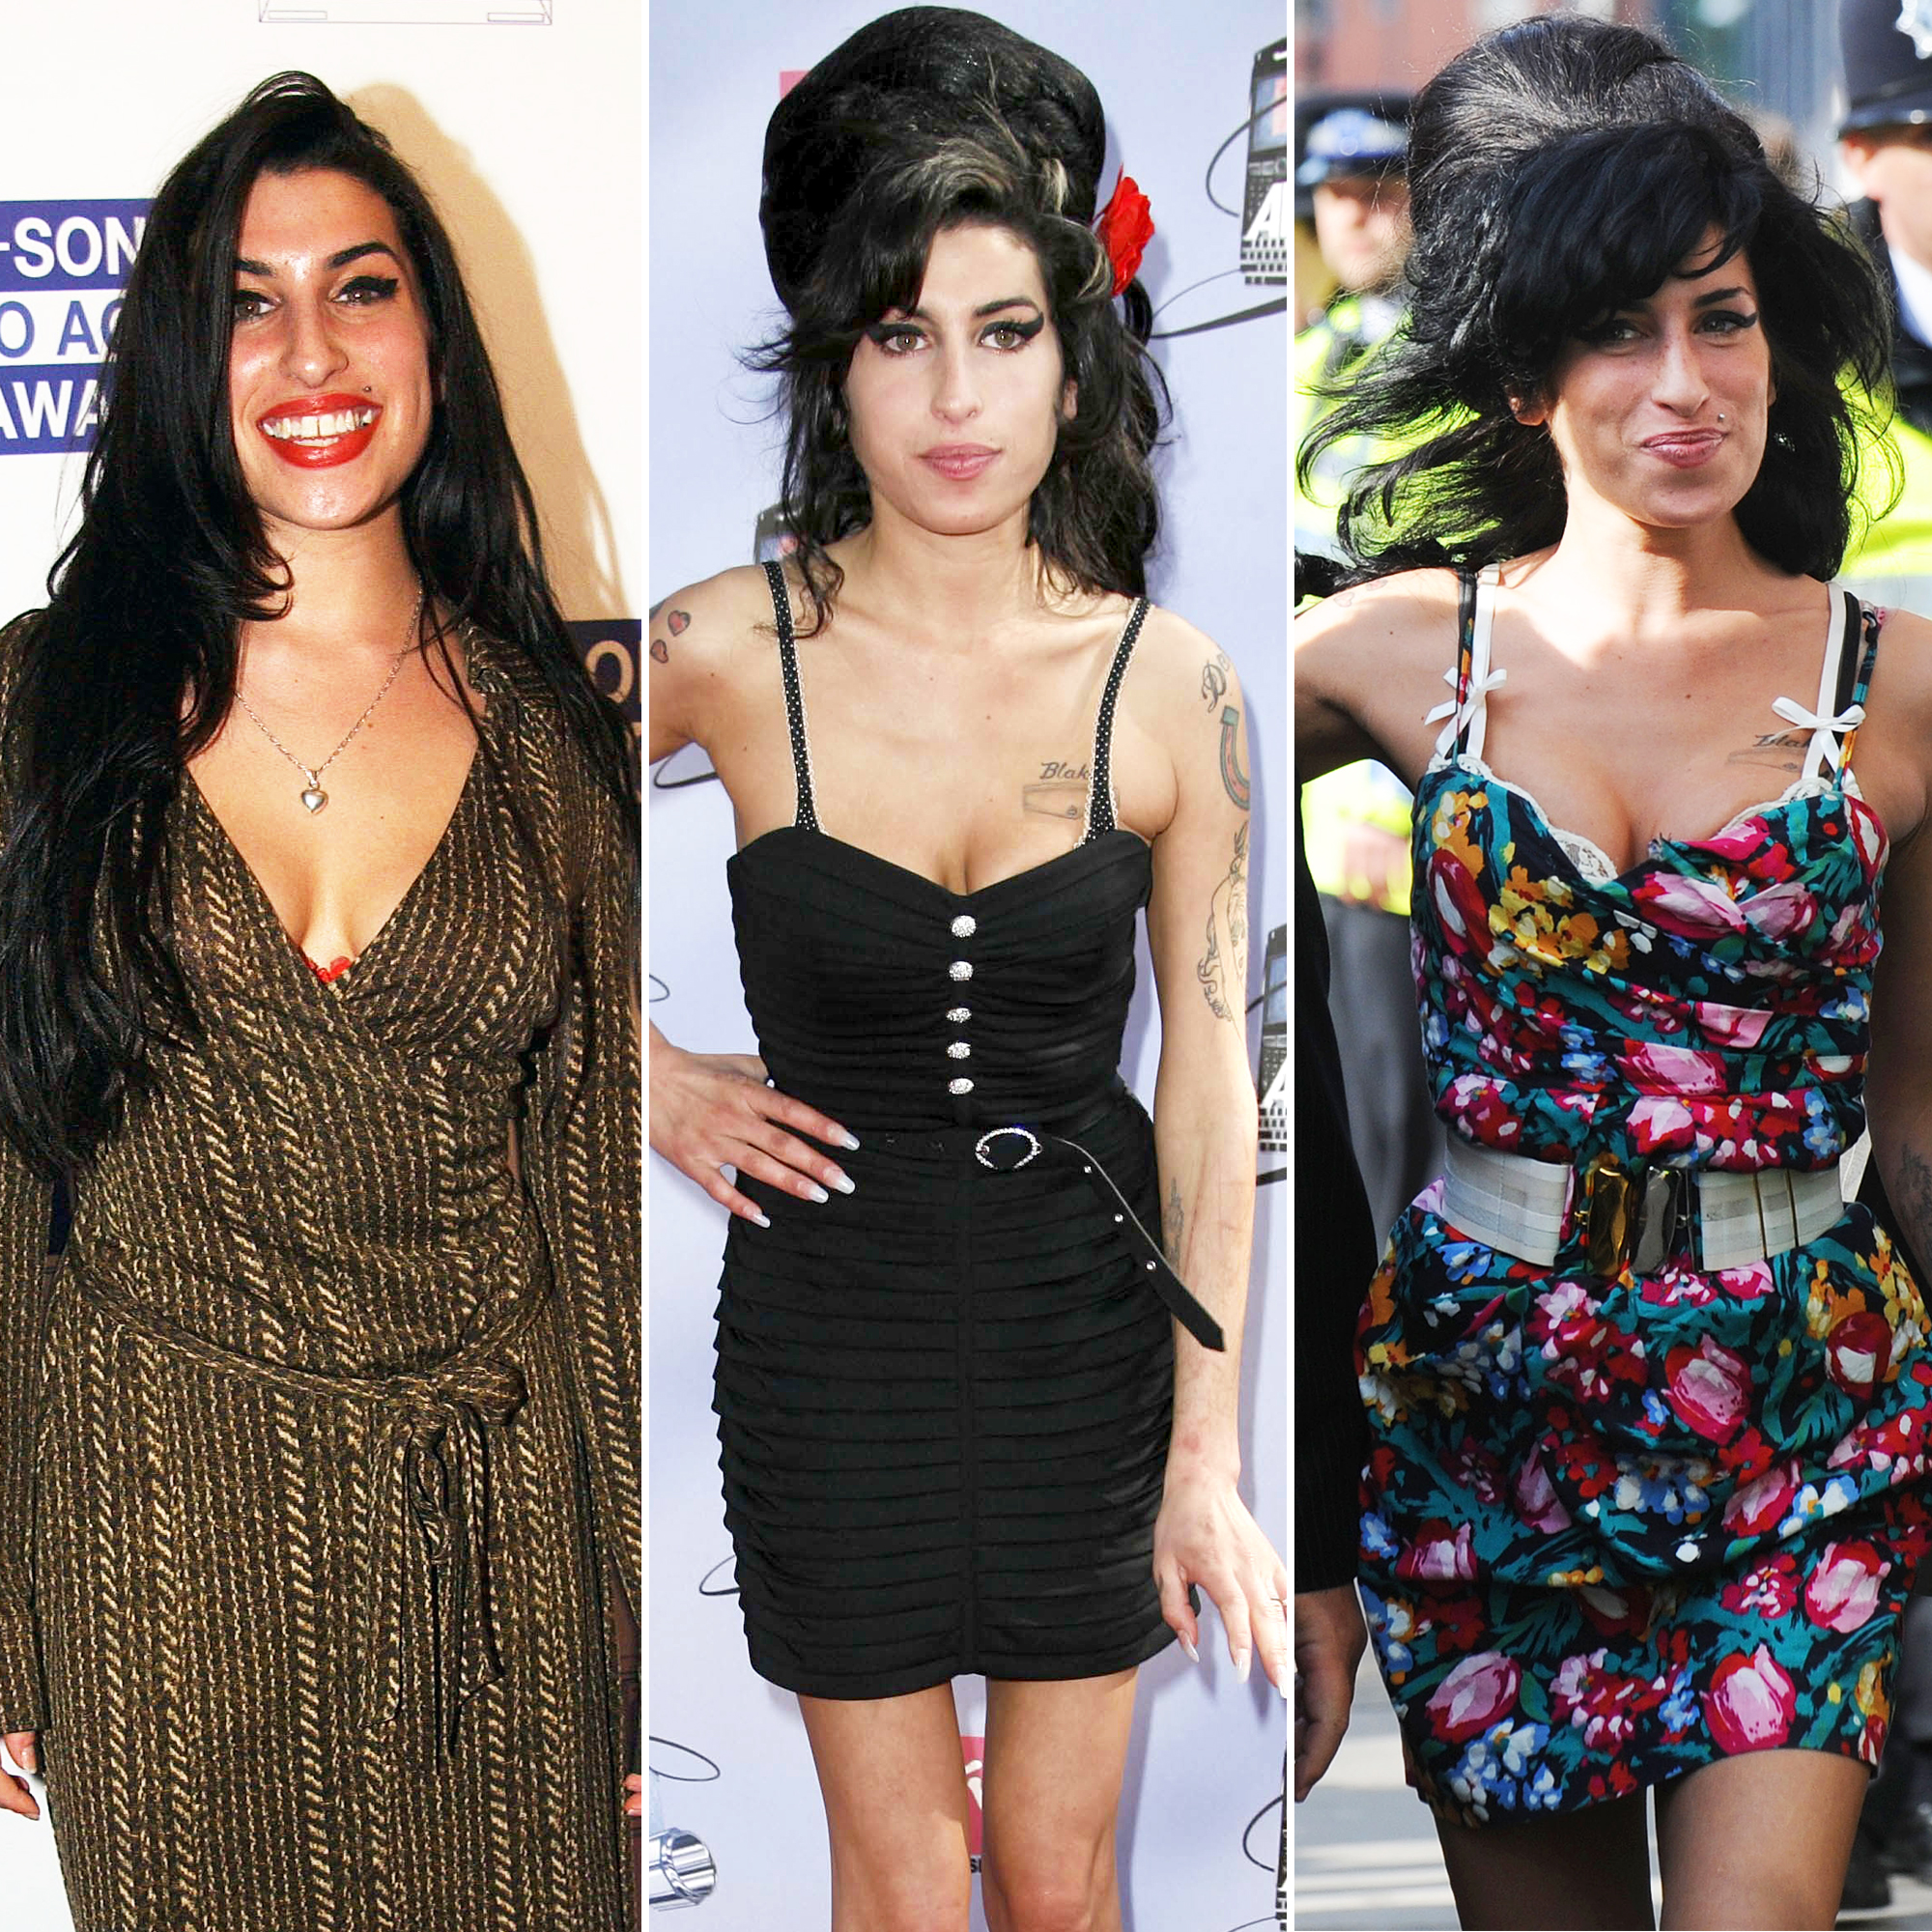 Amy Winehouse Photos Of The Singer Before Her Tragic Death